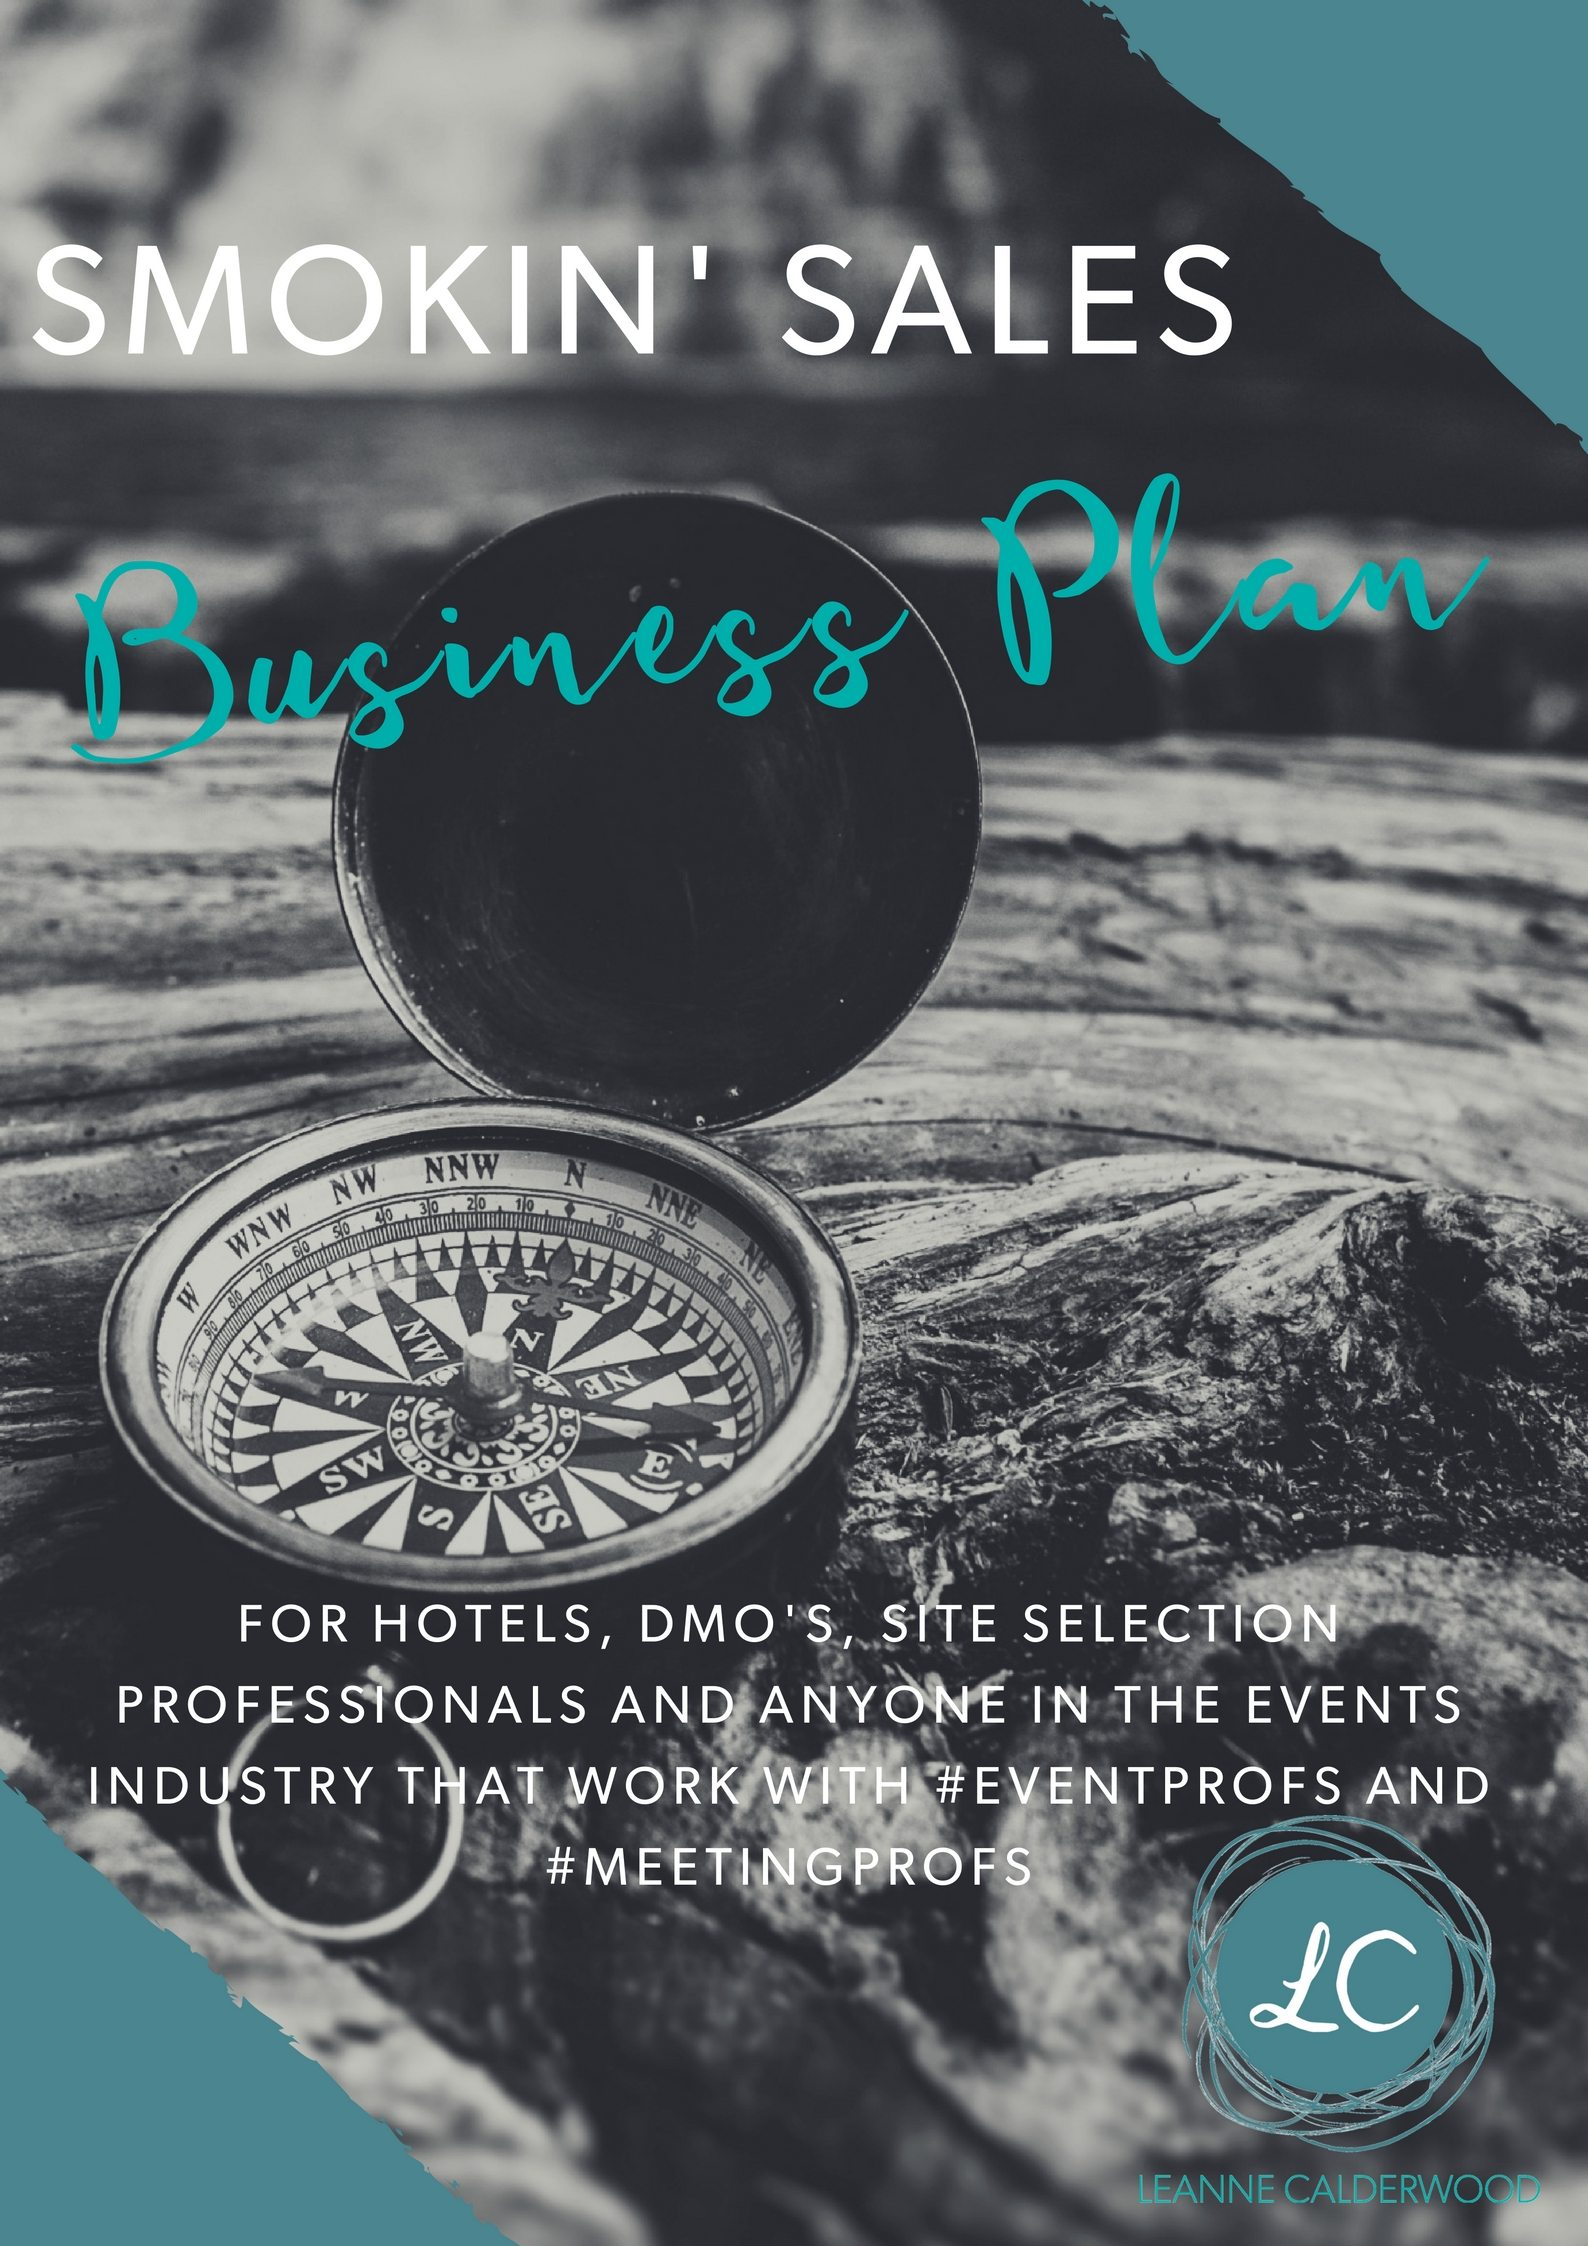 smokin sales business plan